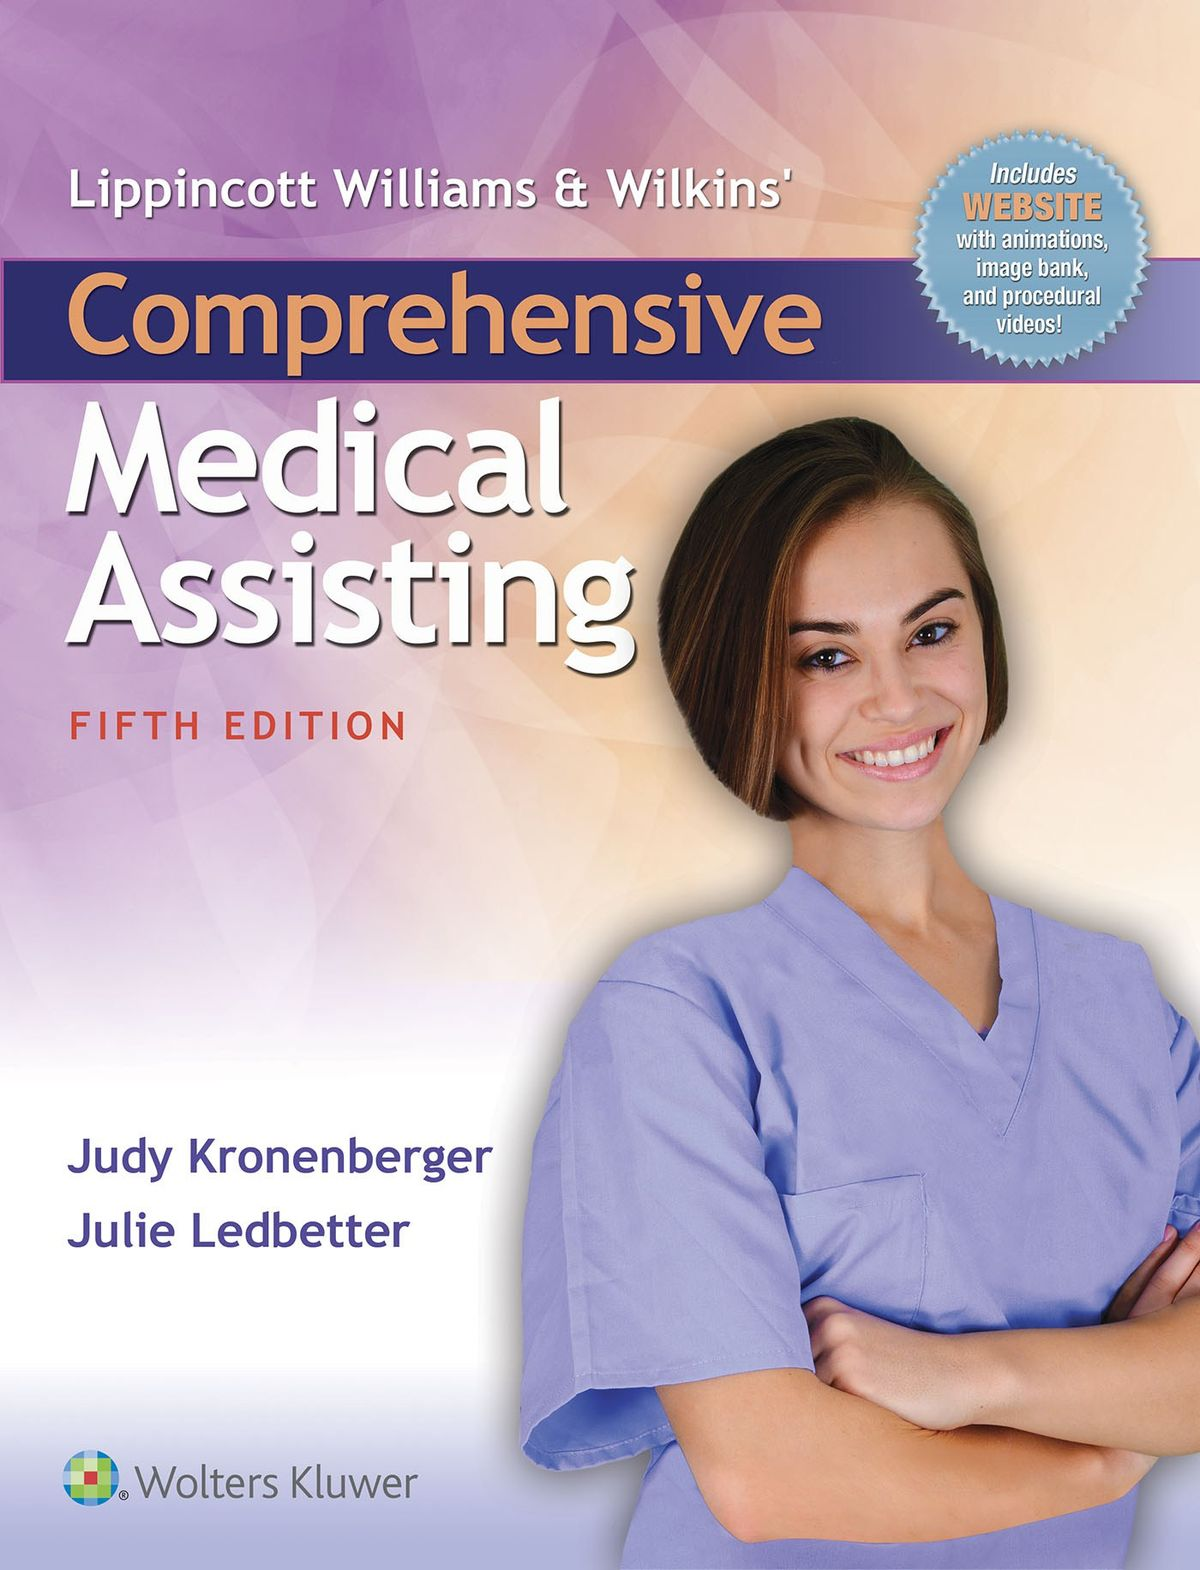 Williams & Wilkins' Comprehensive Medical Assisting